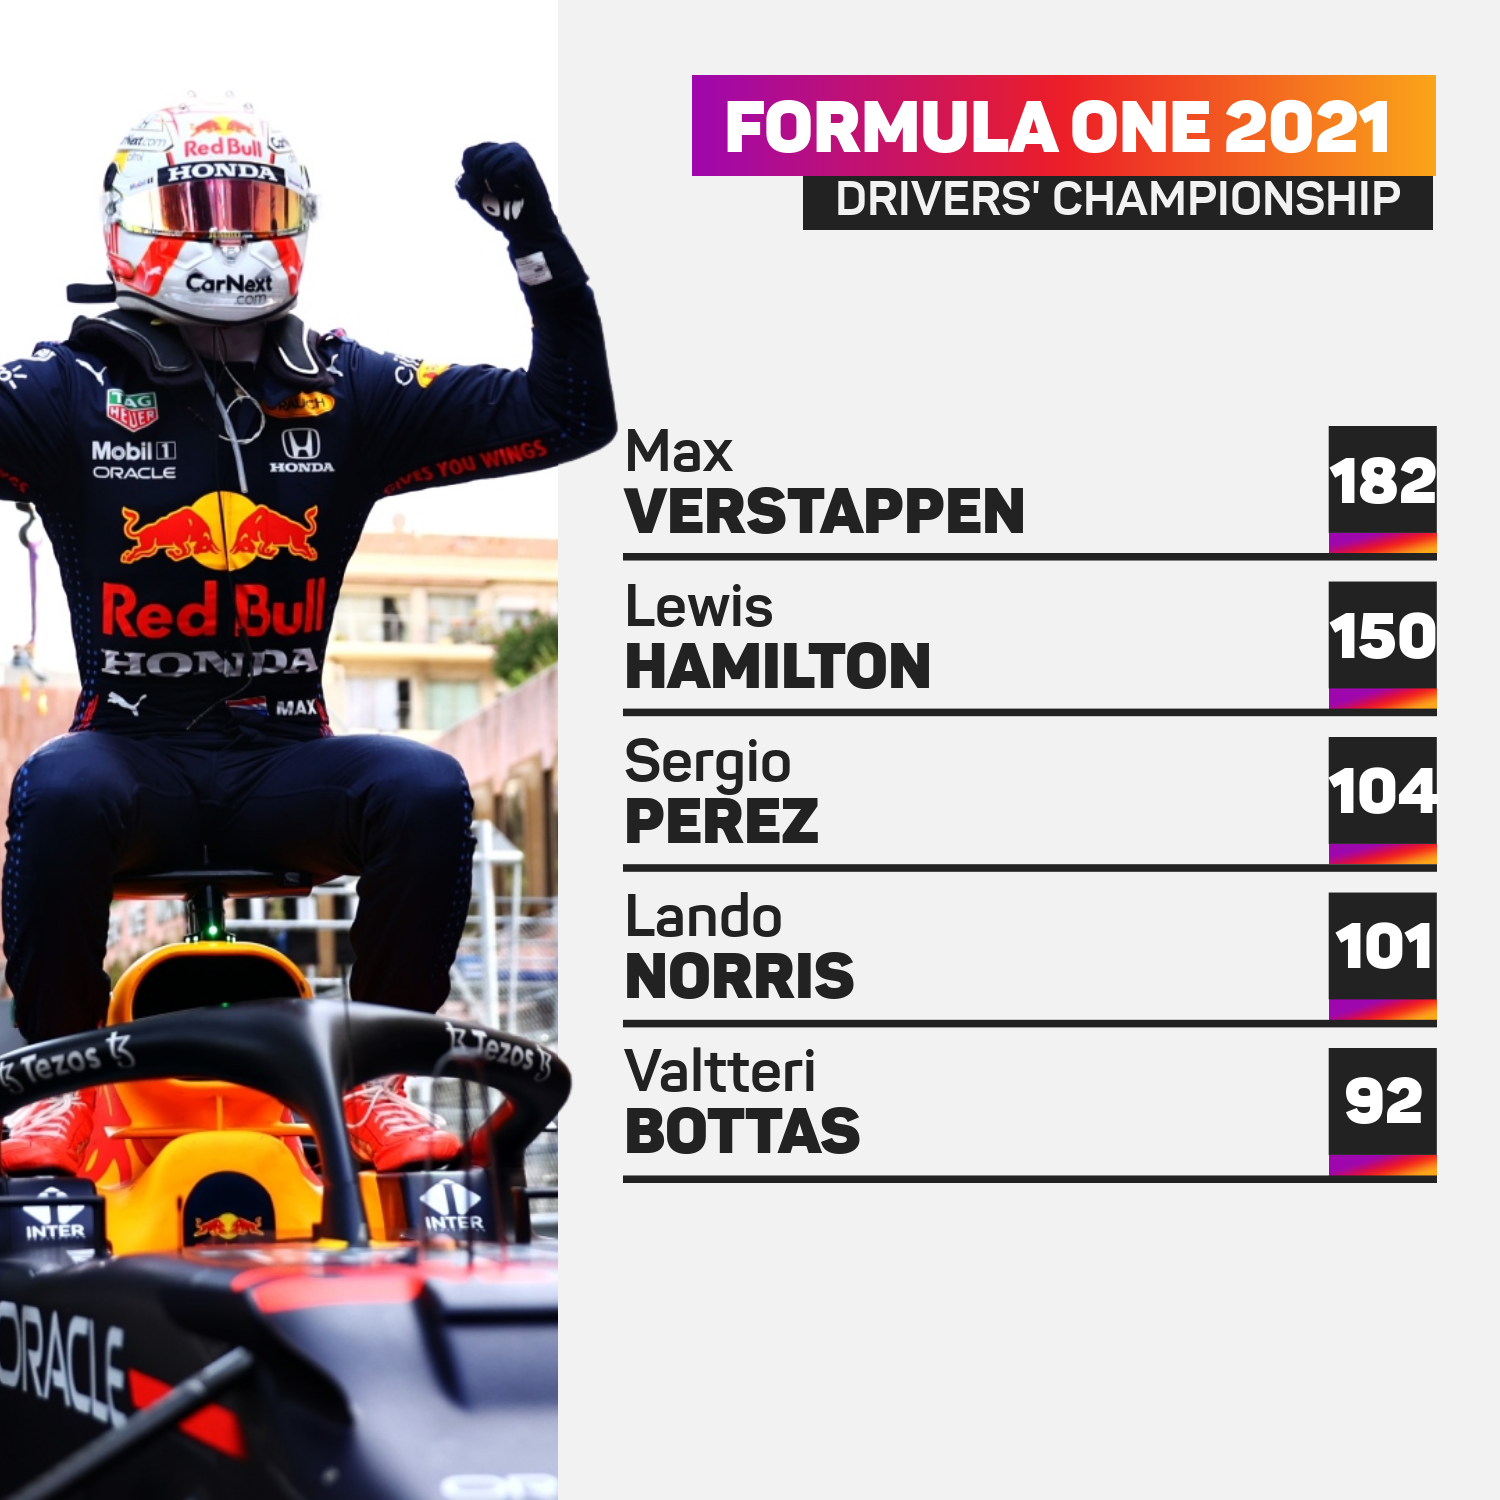 Max Verstappen leads the drivers' championship